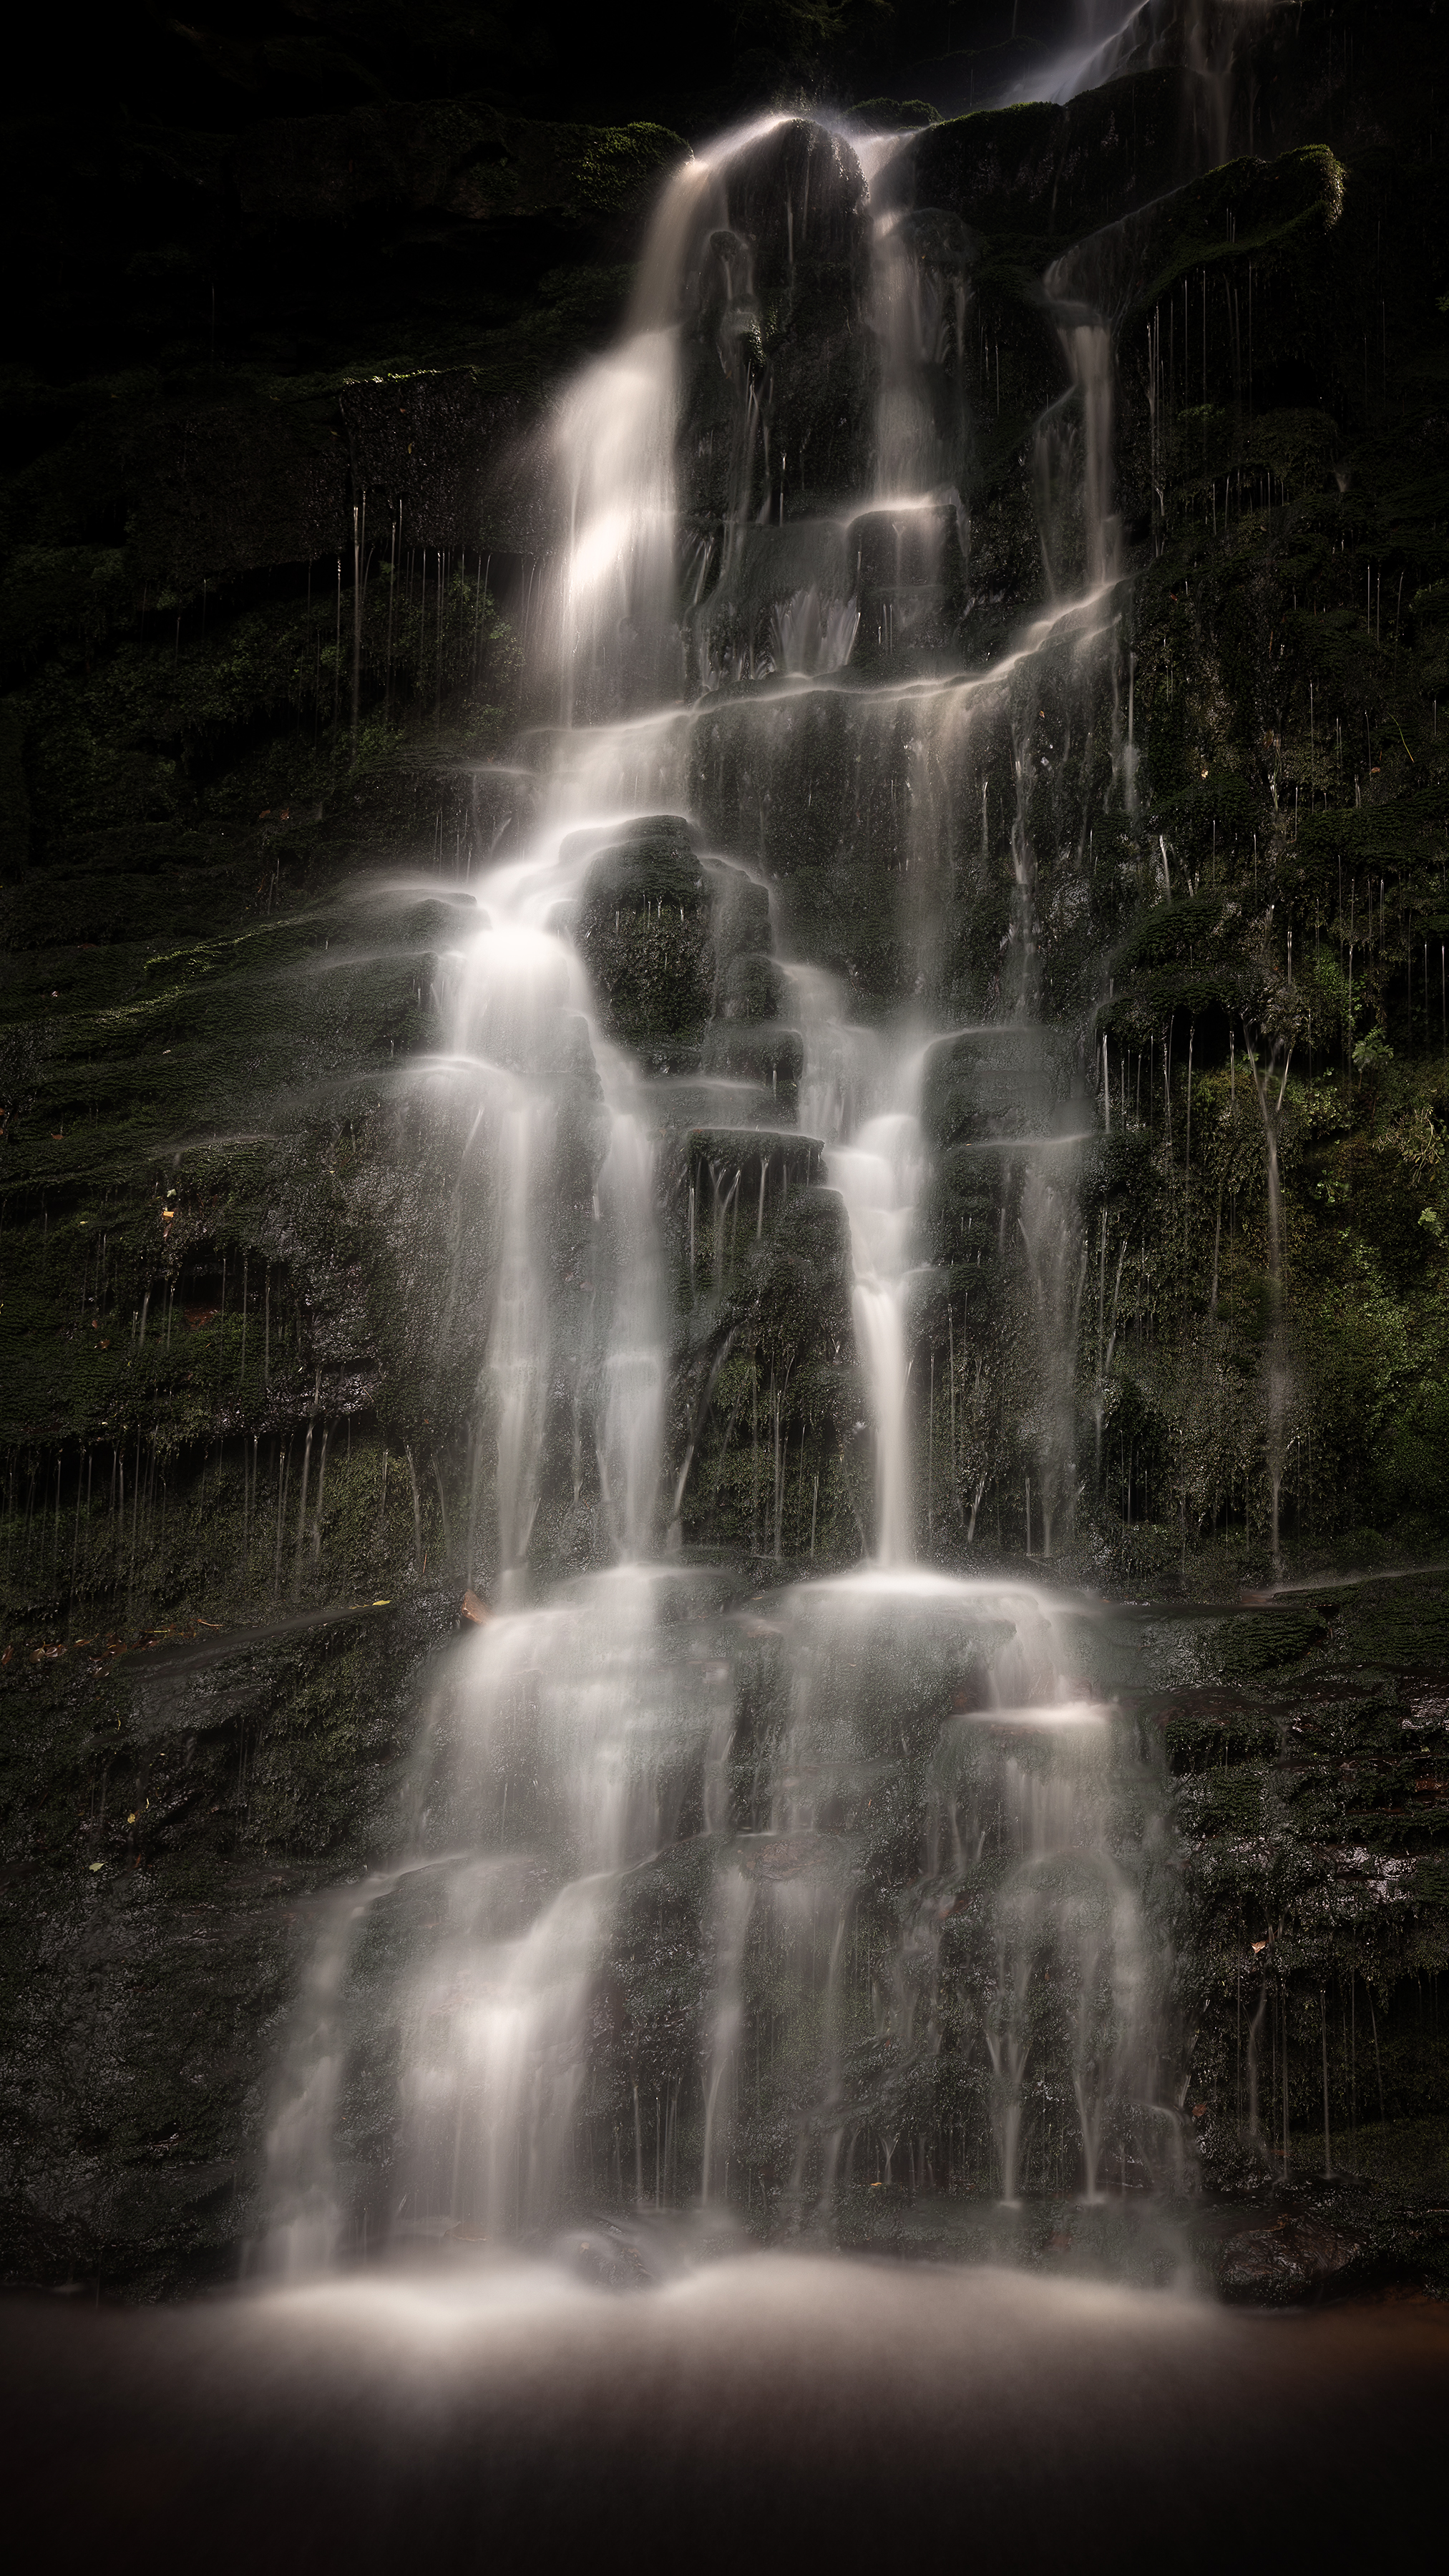 Middle Black Clough Waterfall Peak District Landscape Photography